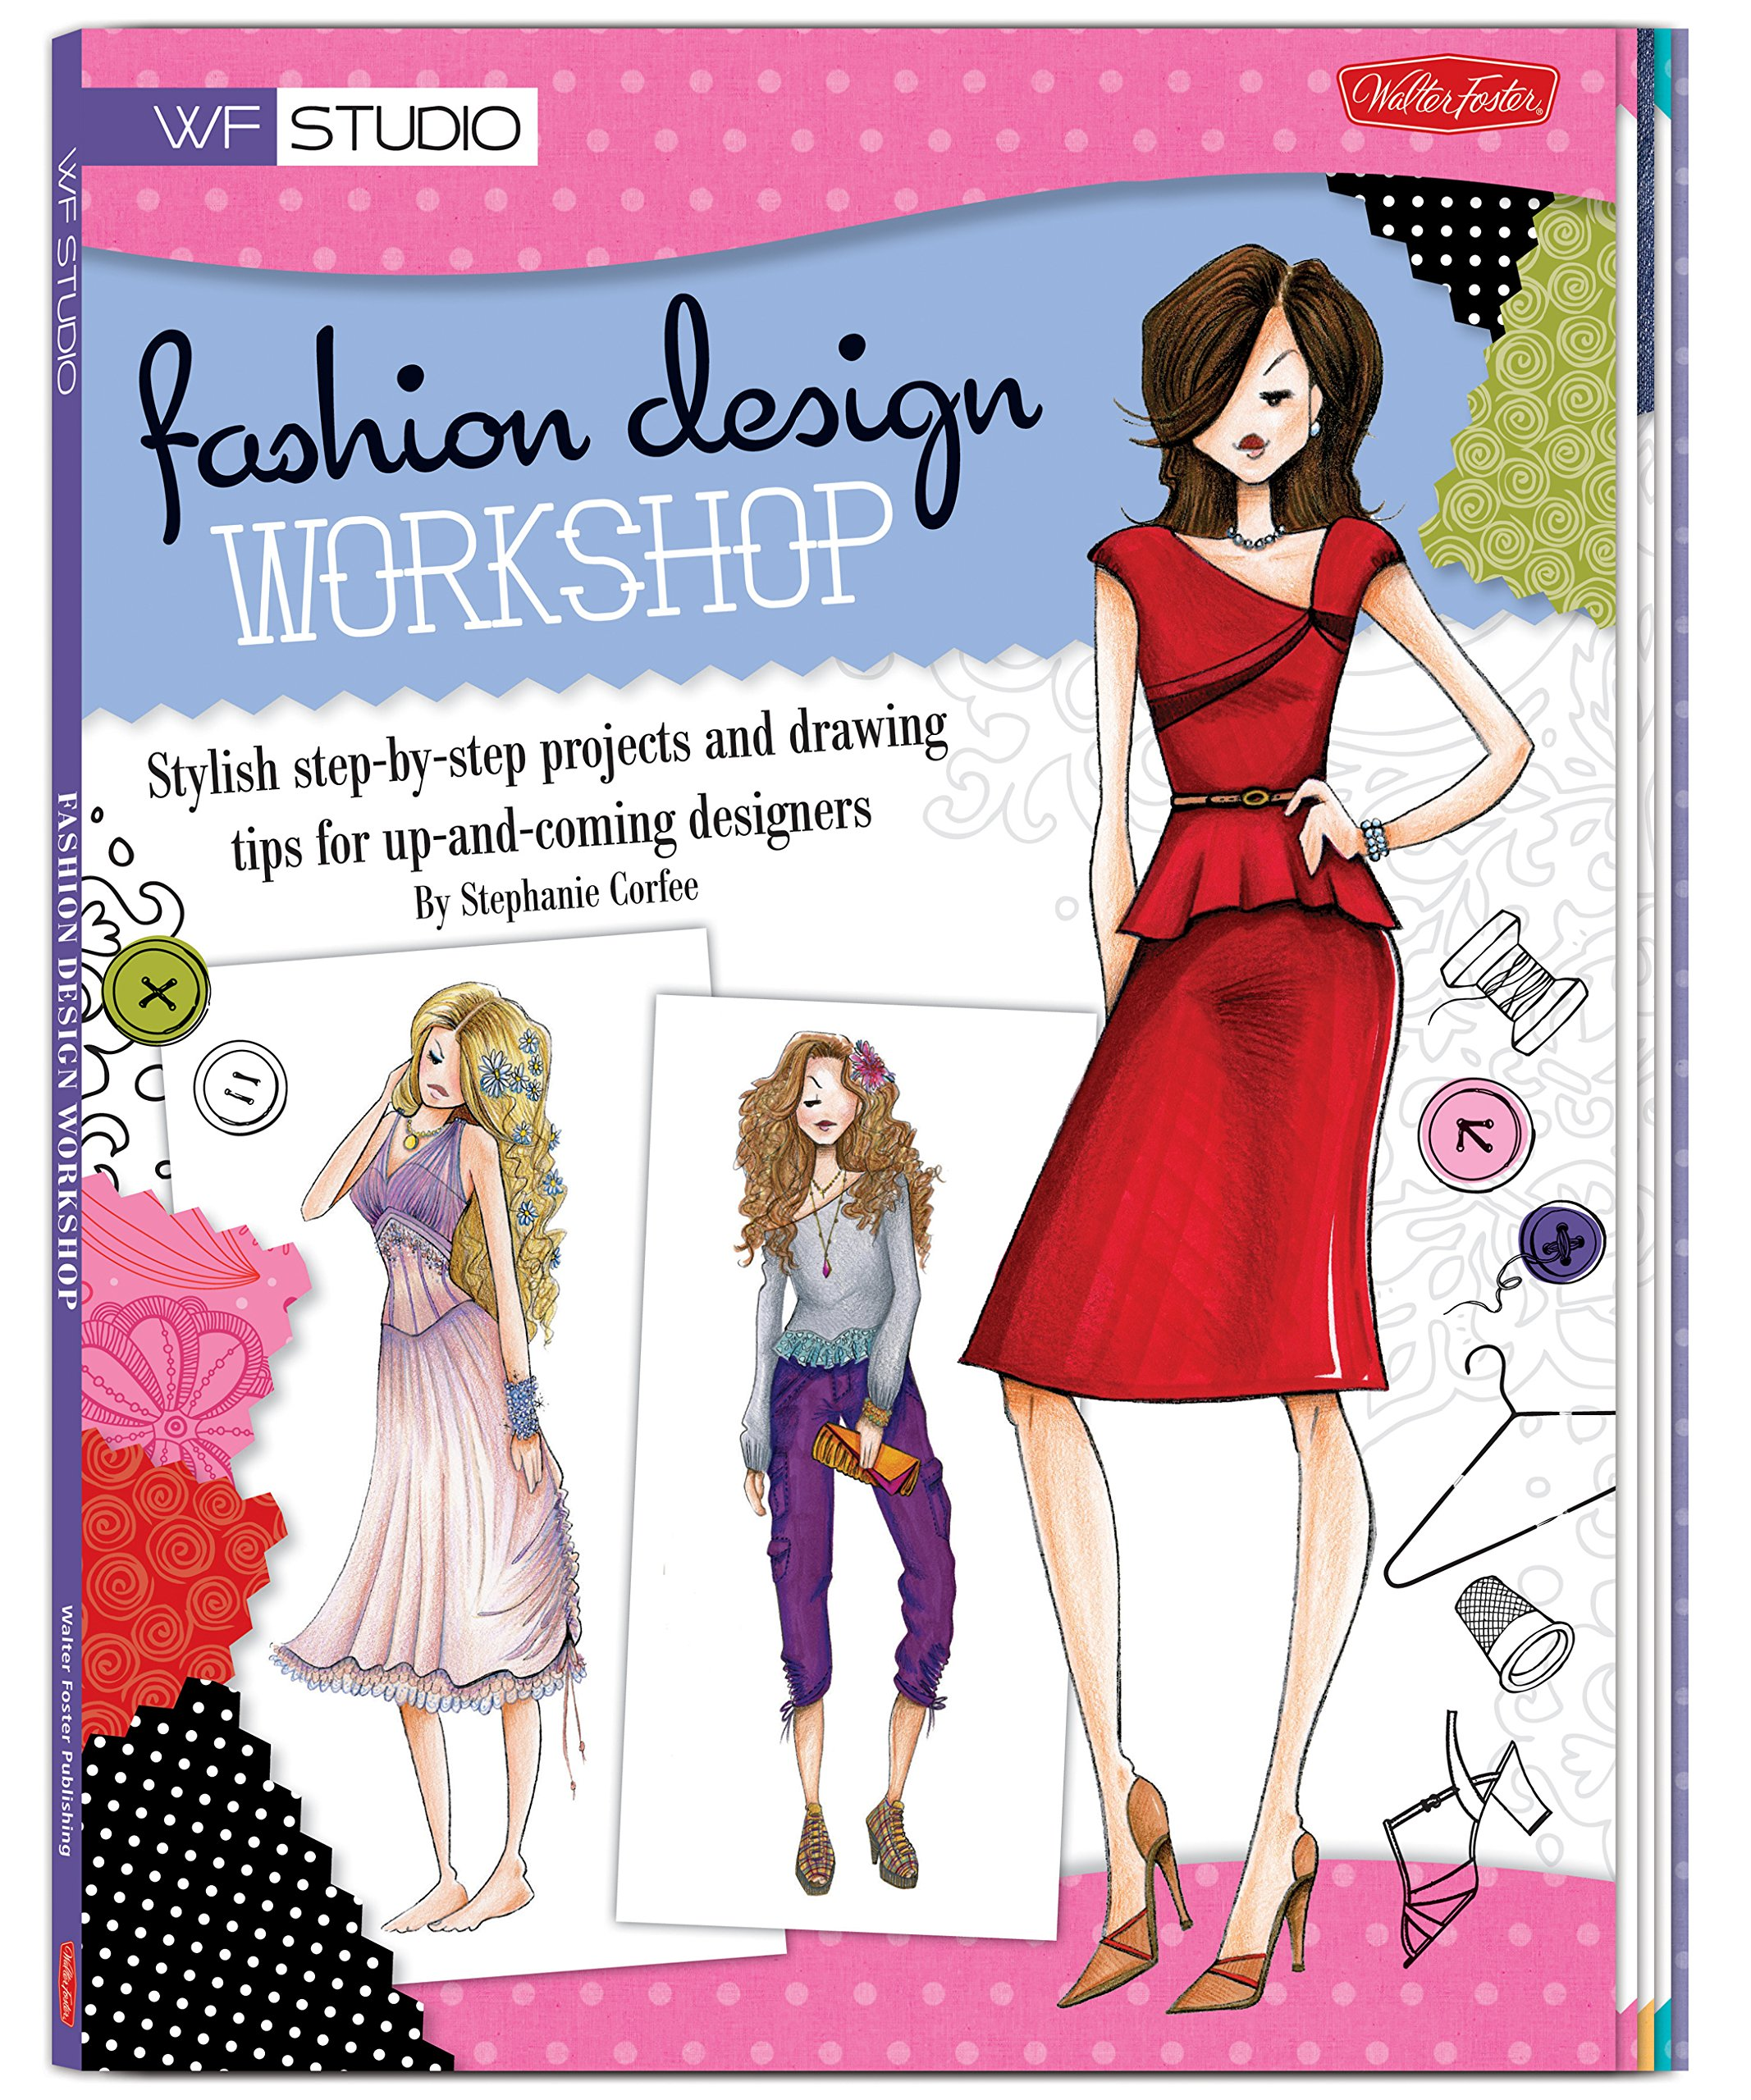 Fashion Design Workshop Stylish Step By Step Projects And Drawing Tips For Up And Coming Designers Walter Foster Studio Corfee Stephanie 8601234627937 Amazon Com Books